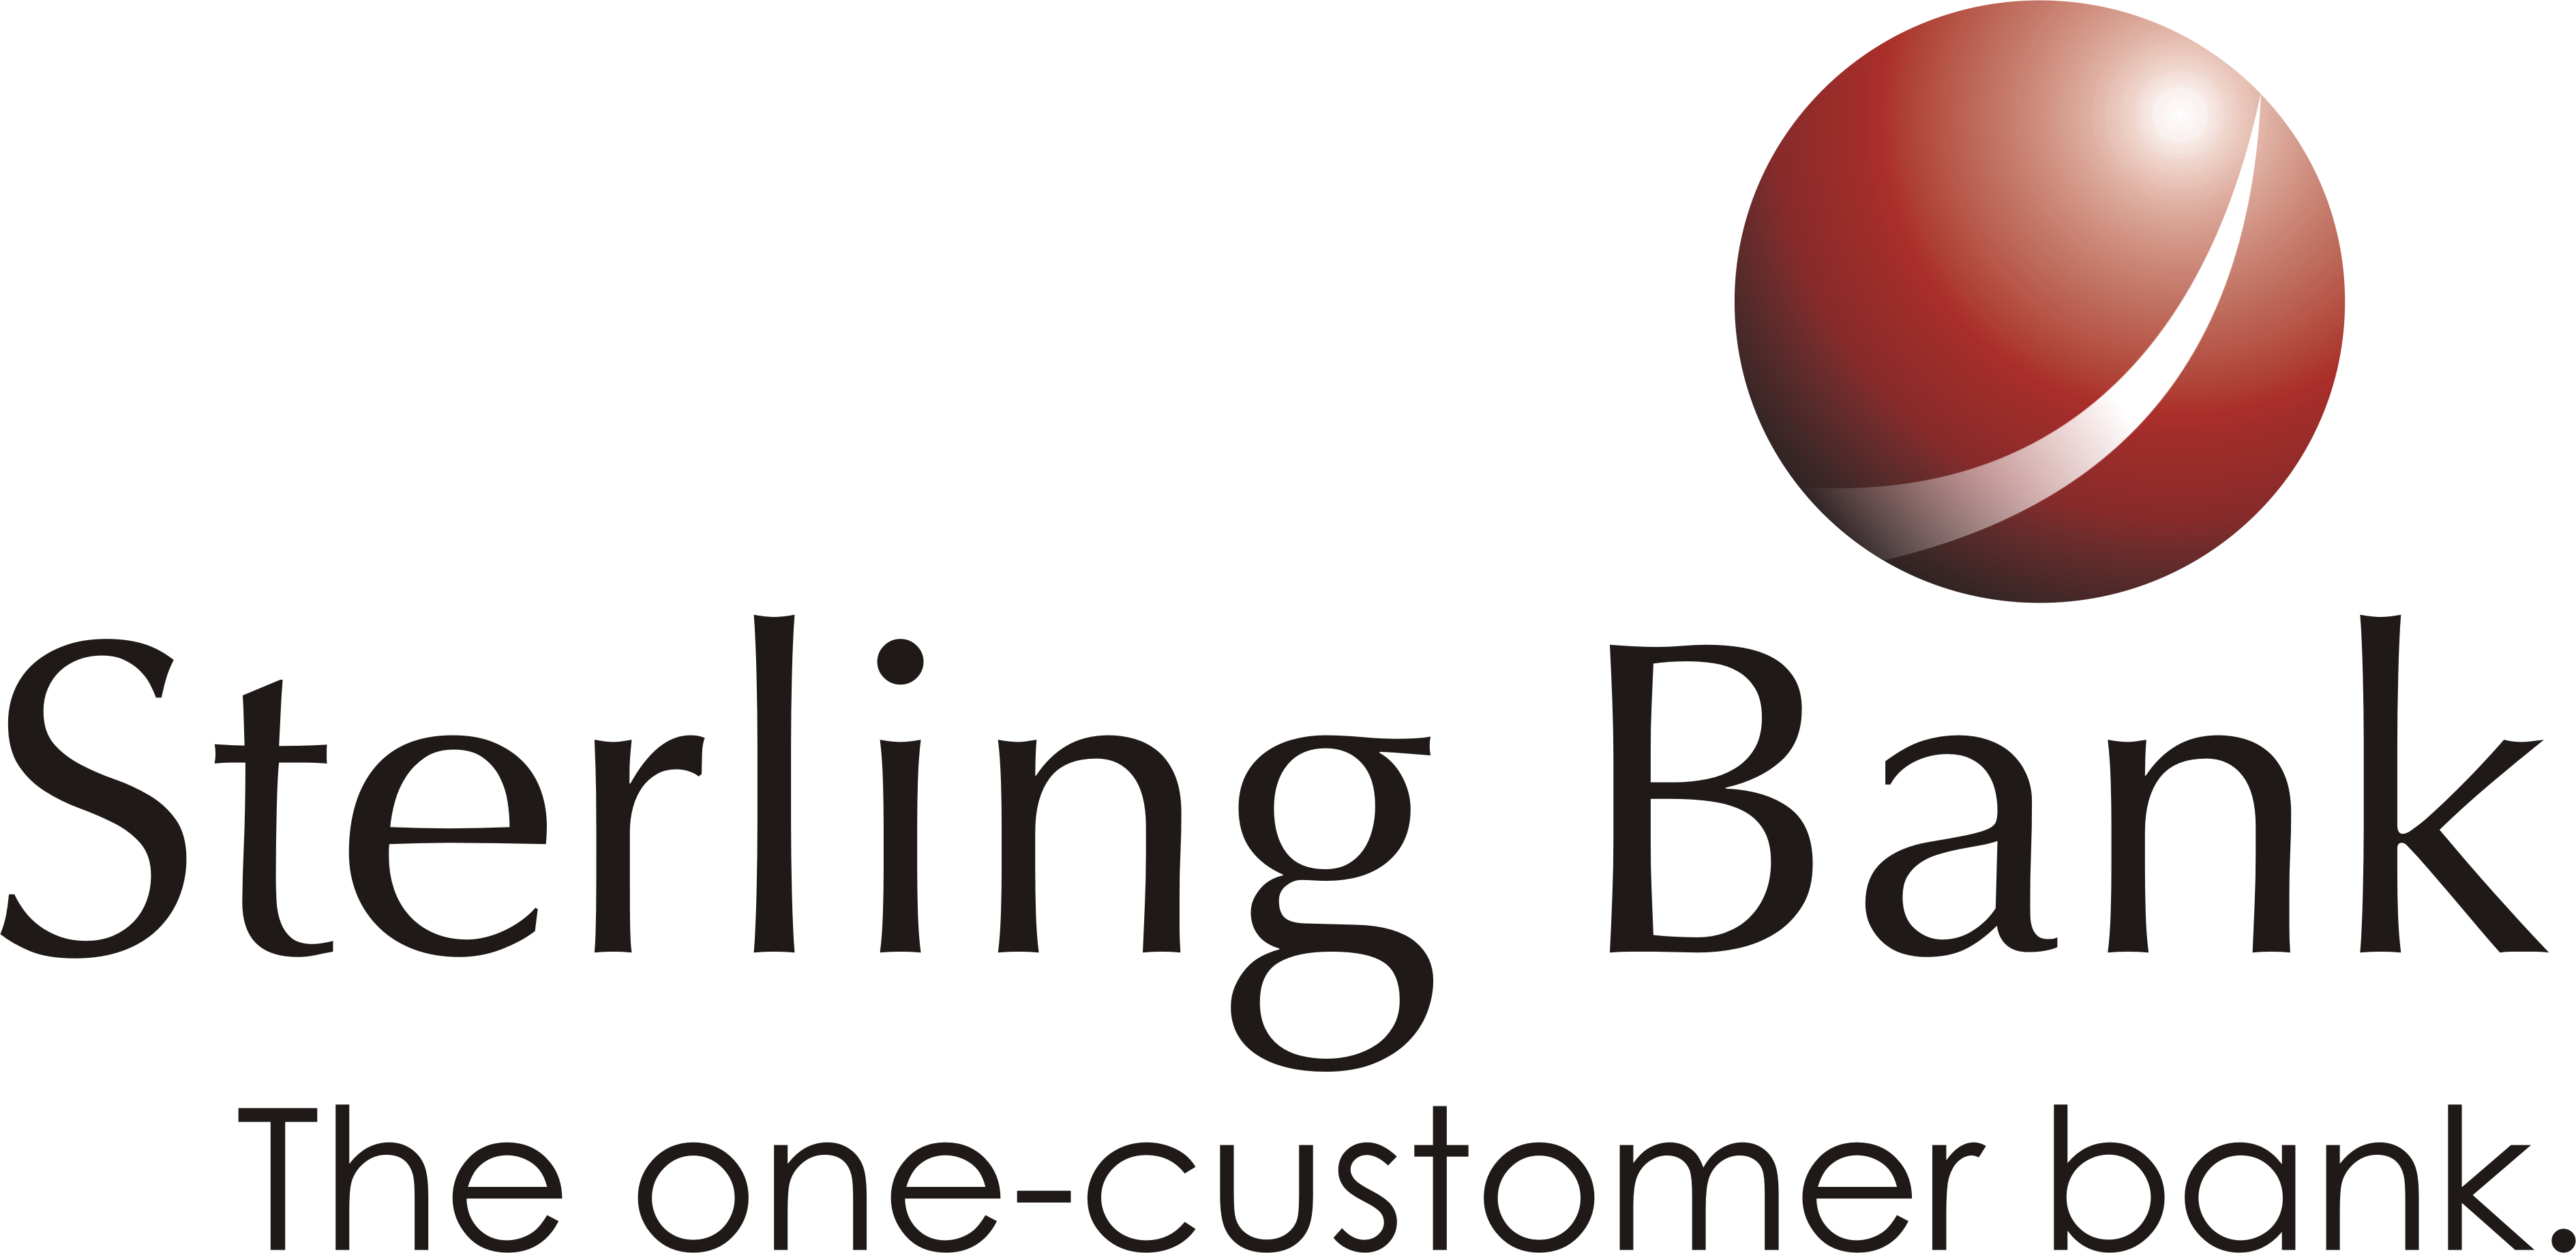 Home ? Business ? Sterling Bank's Share Price Rises as Lender Distances Self from Slush Deals